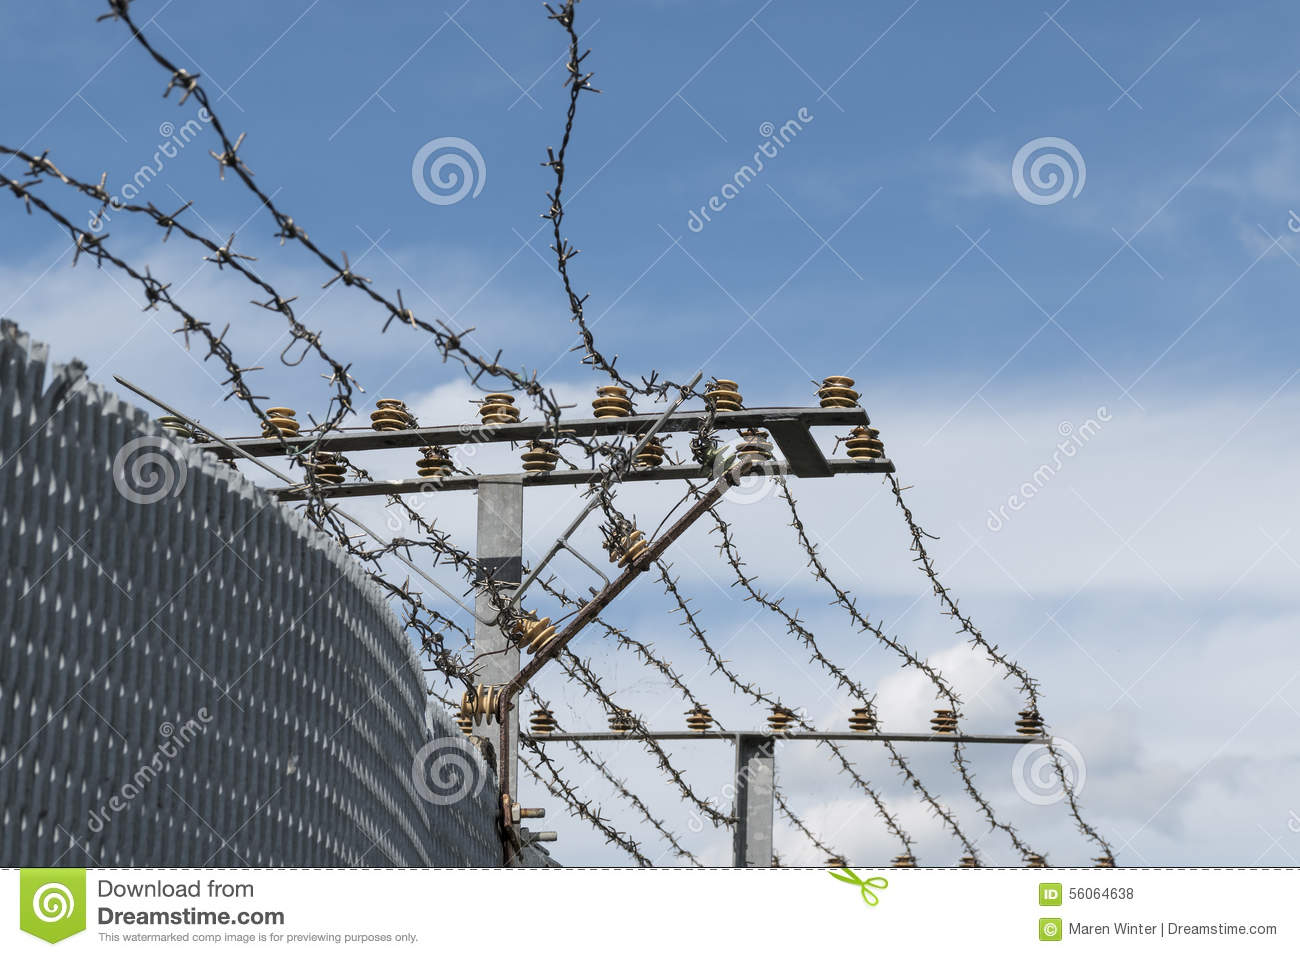 High Security Fence With Electric Barbed Wire Against A